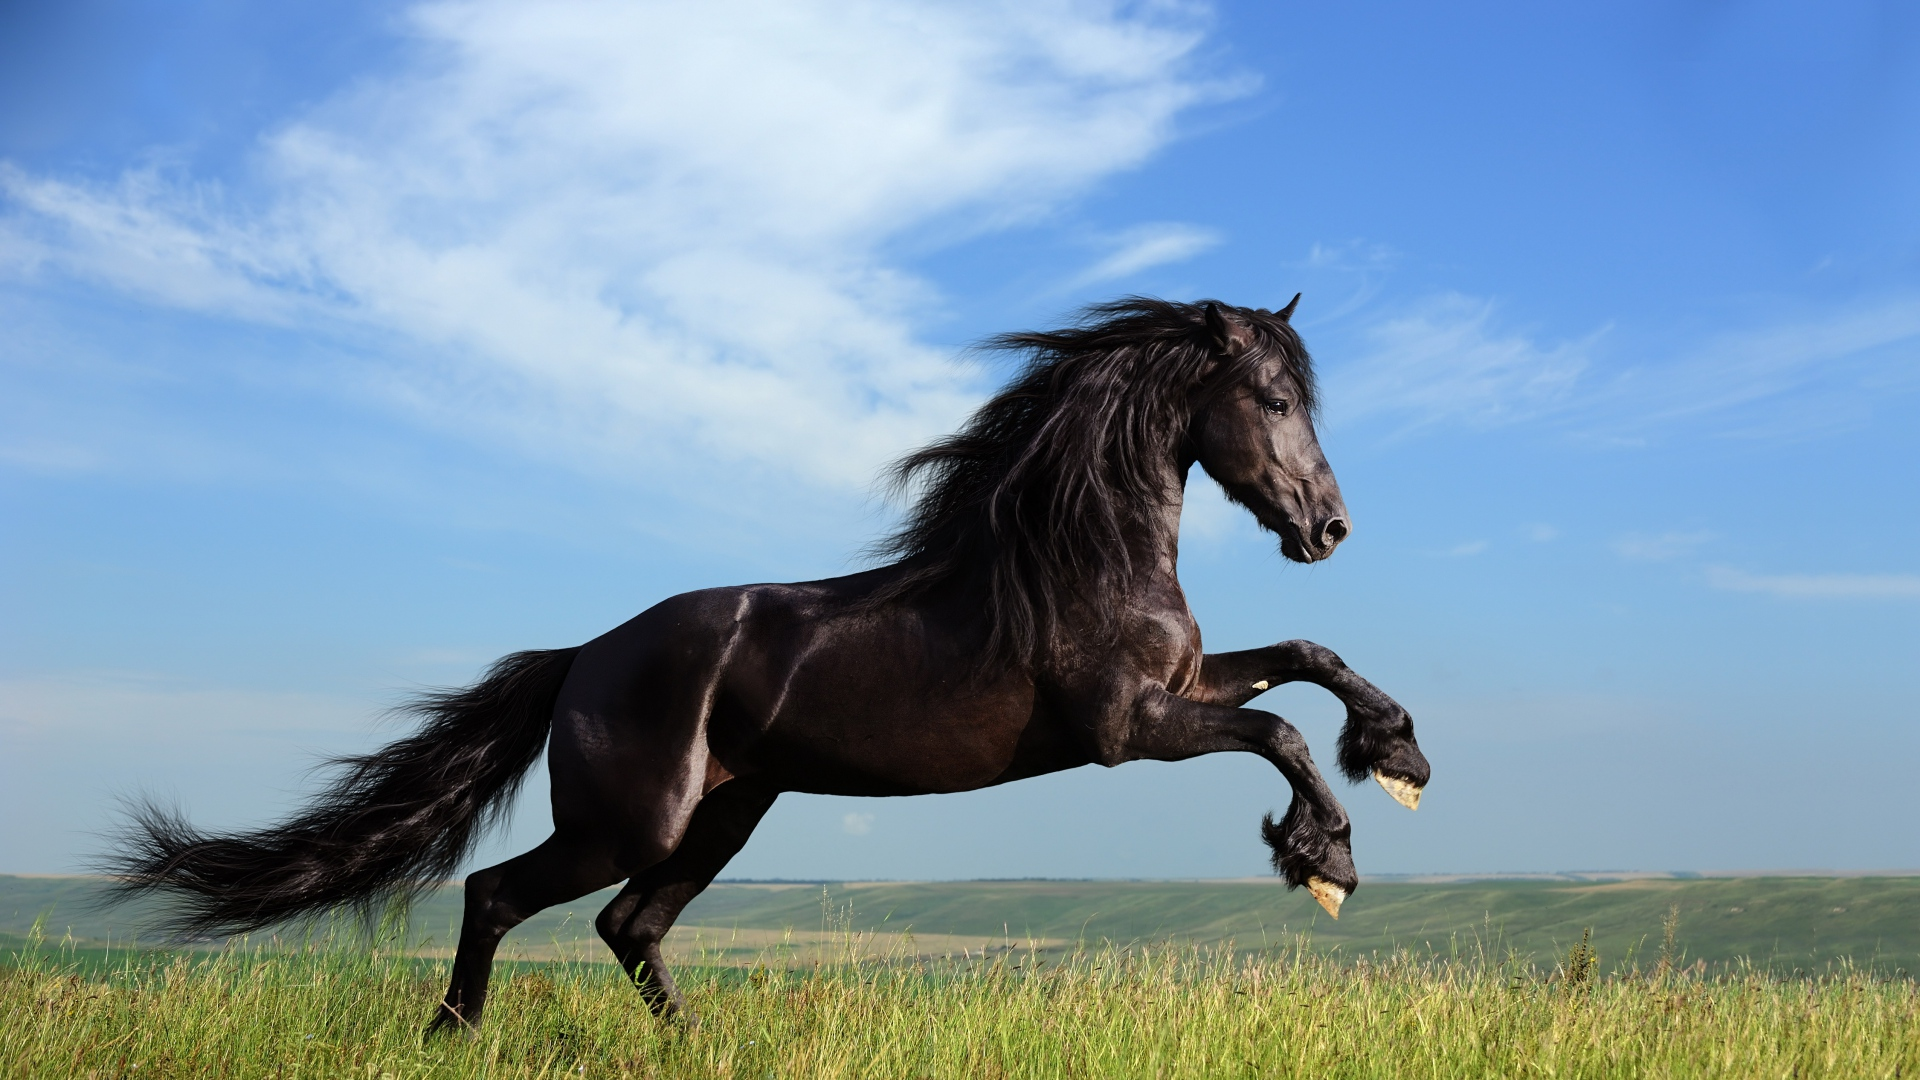 Horse Galloping 1891895 Hd Wallpaper Backgrounds Download